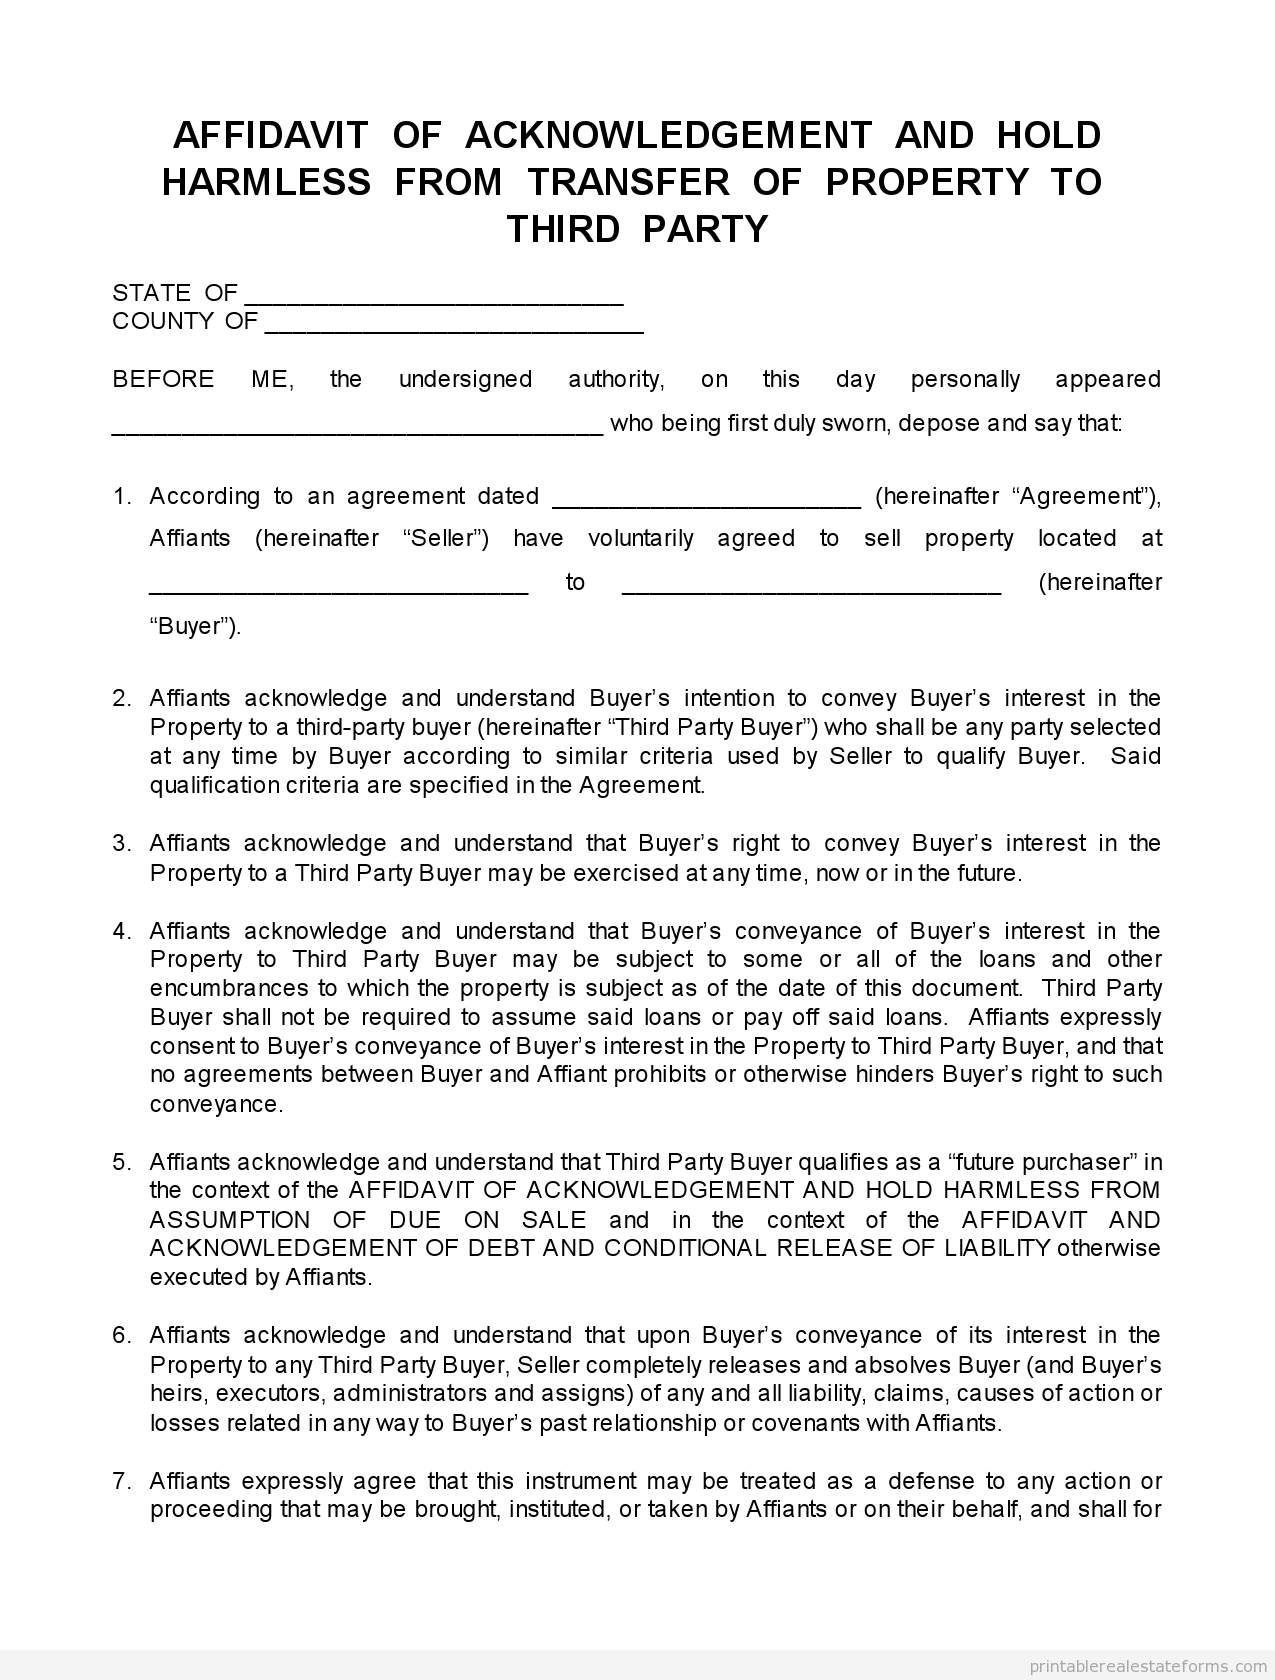 Hold Harmless Agreement Template Letter With Sample. Printable Disclosure  Transfer To Third Party 4 Template 2015